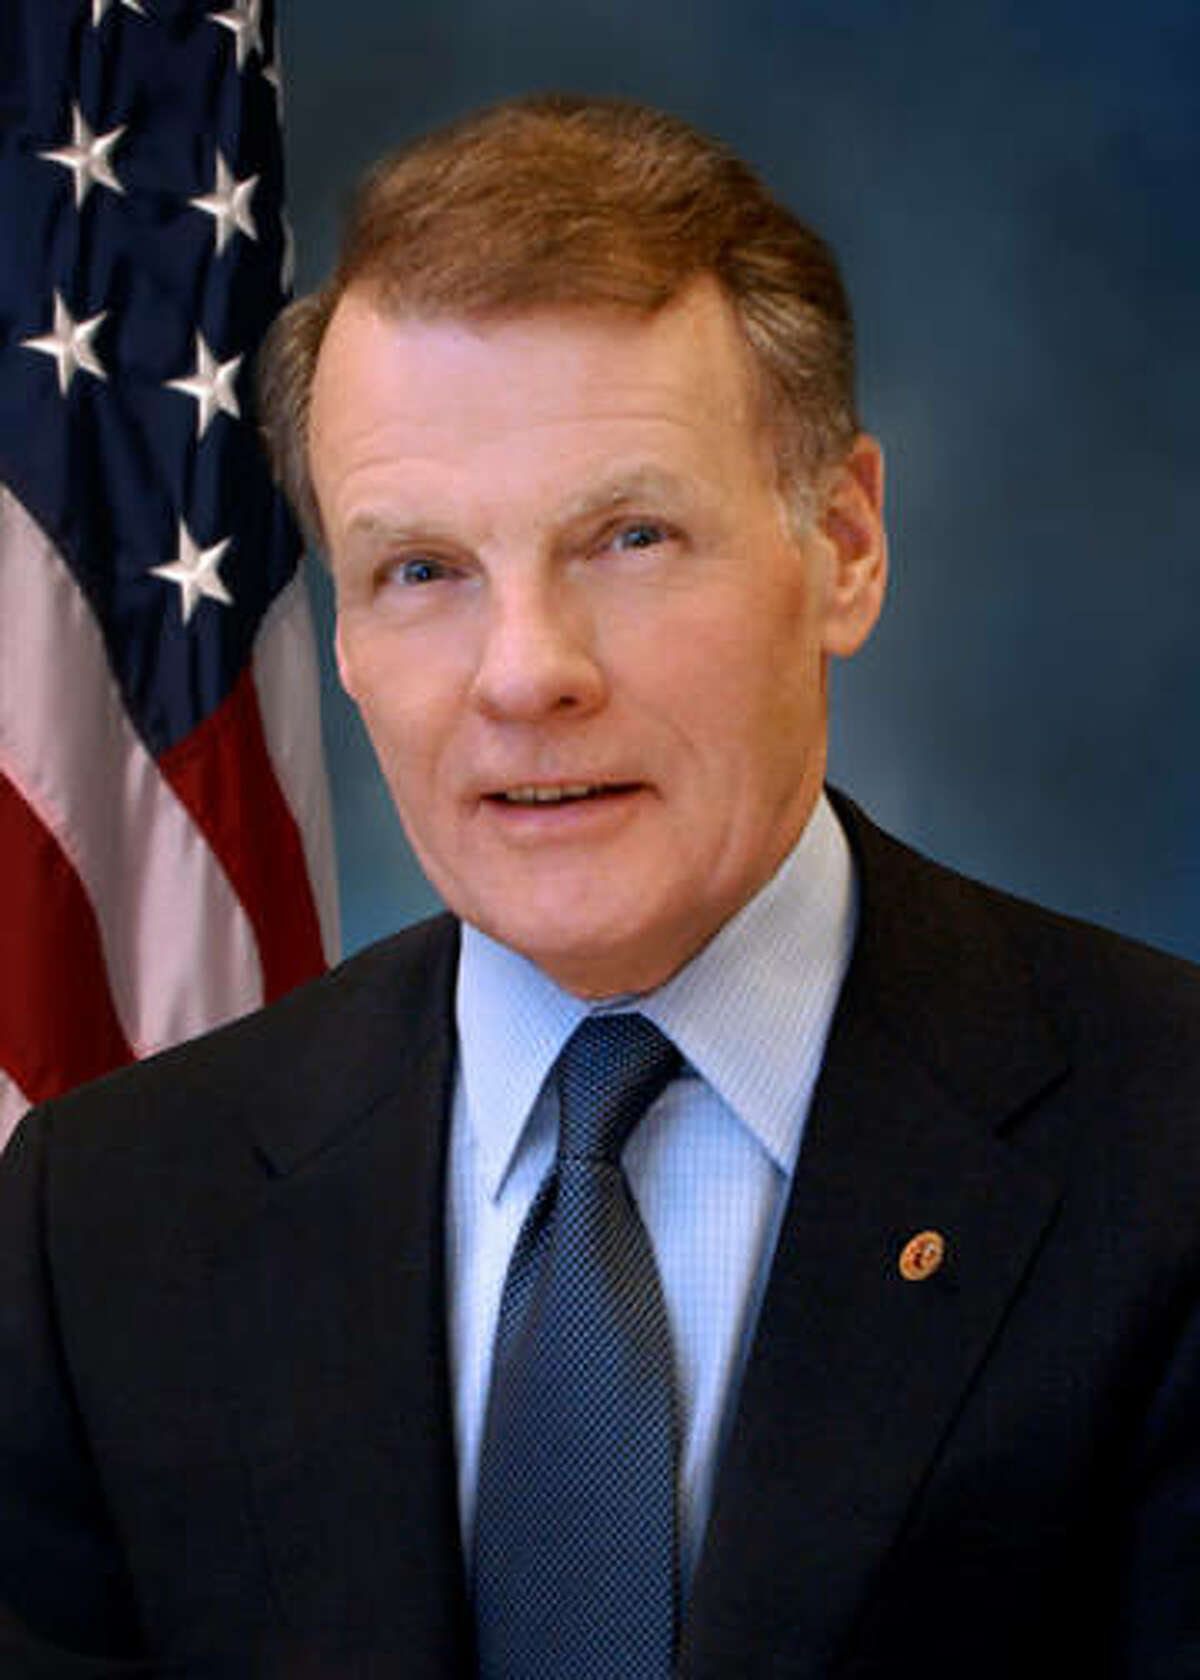 Former Illinois House Speaker Michael J. Madigan, 78, announced Thursday that he will step down from the state House of Representatives after 50 years in office.